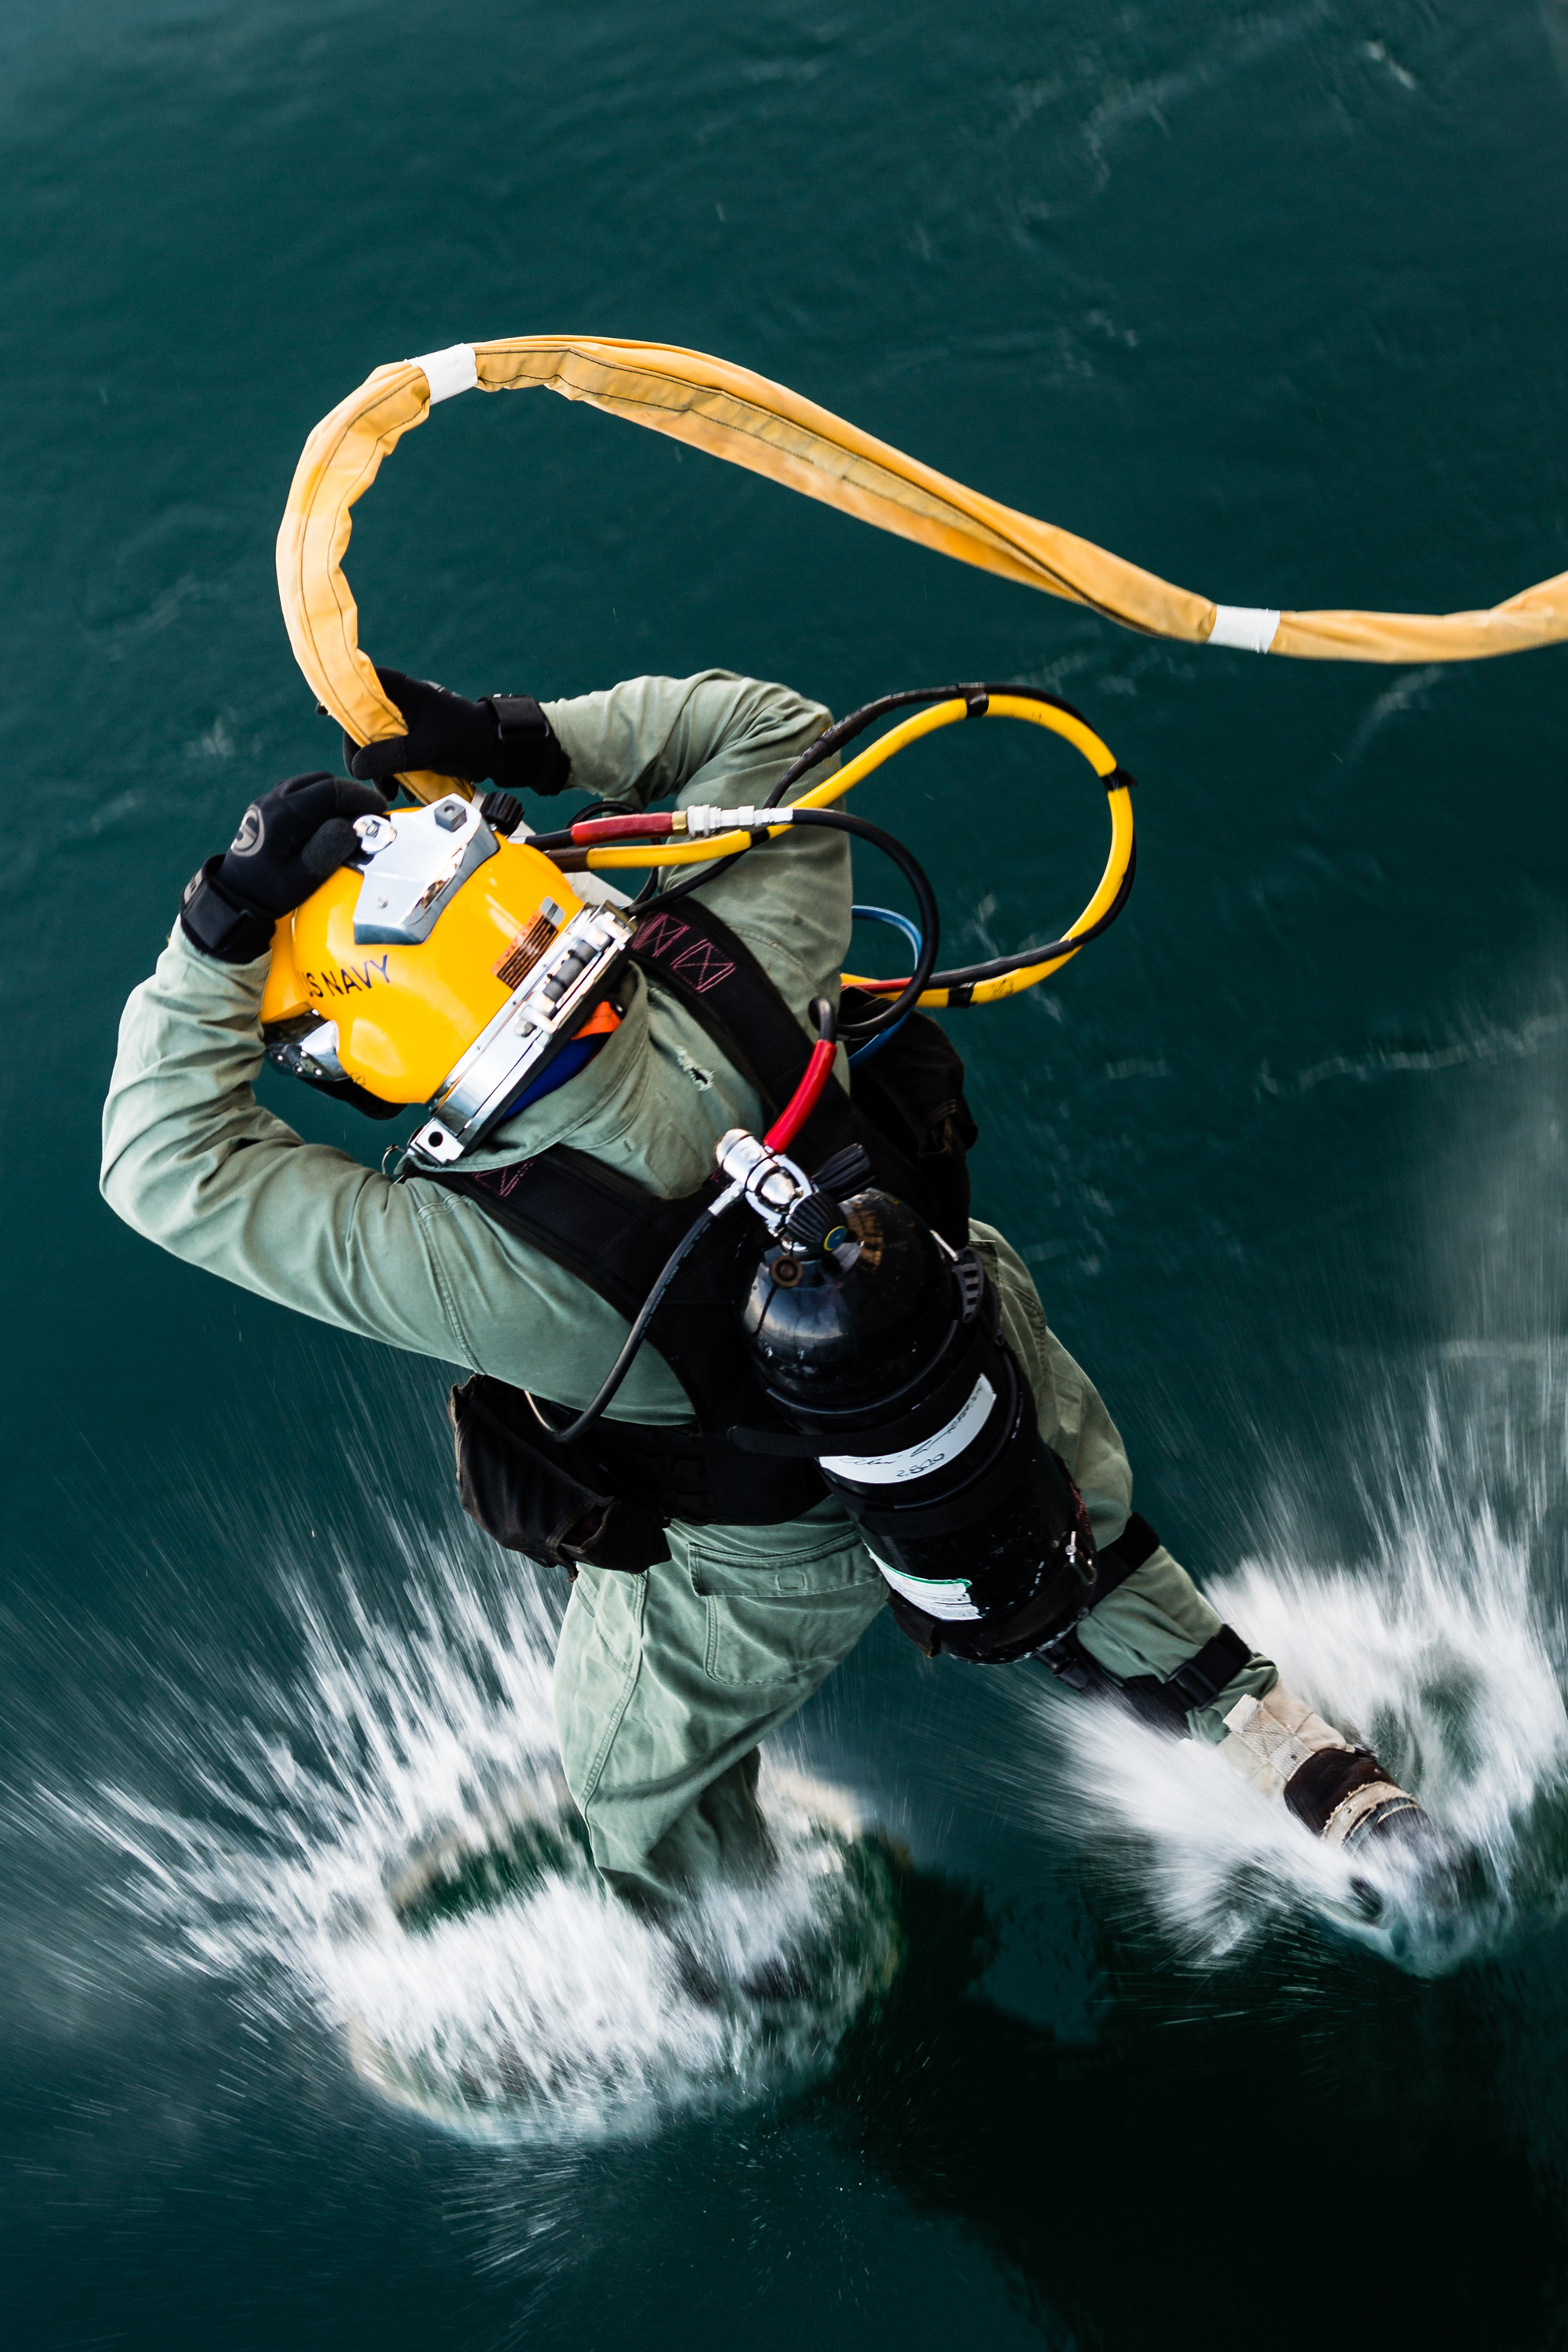 navy diver jumping into the water